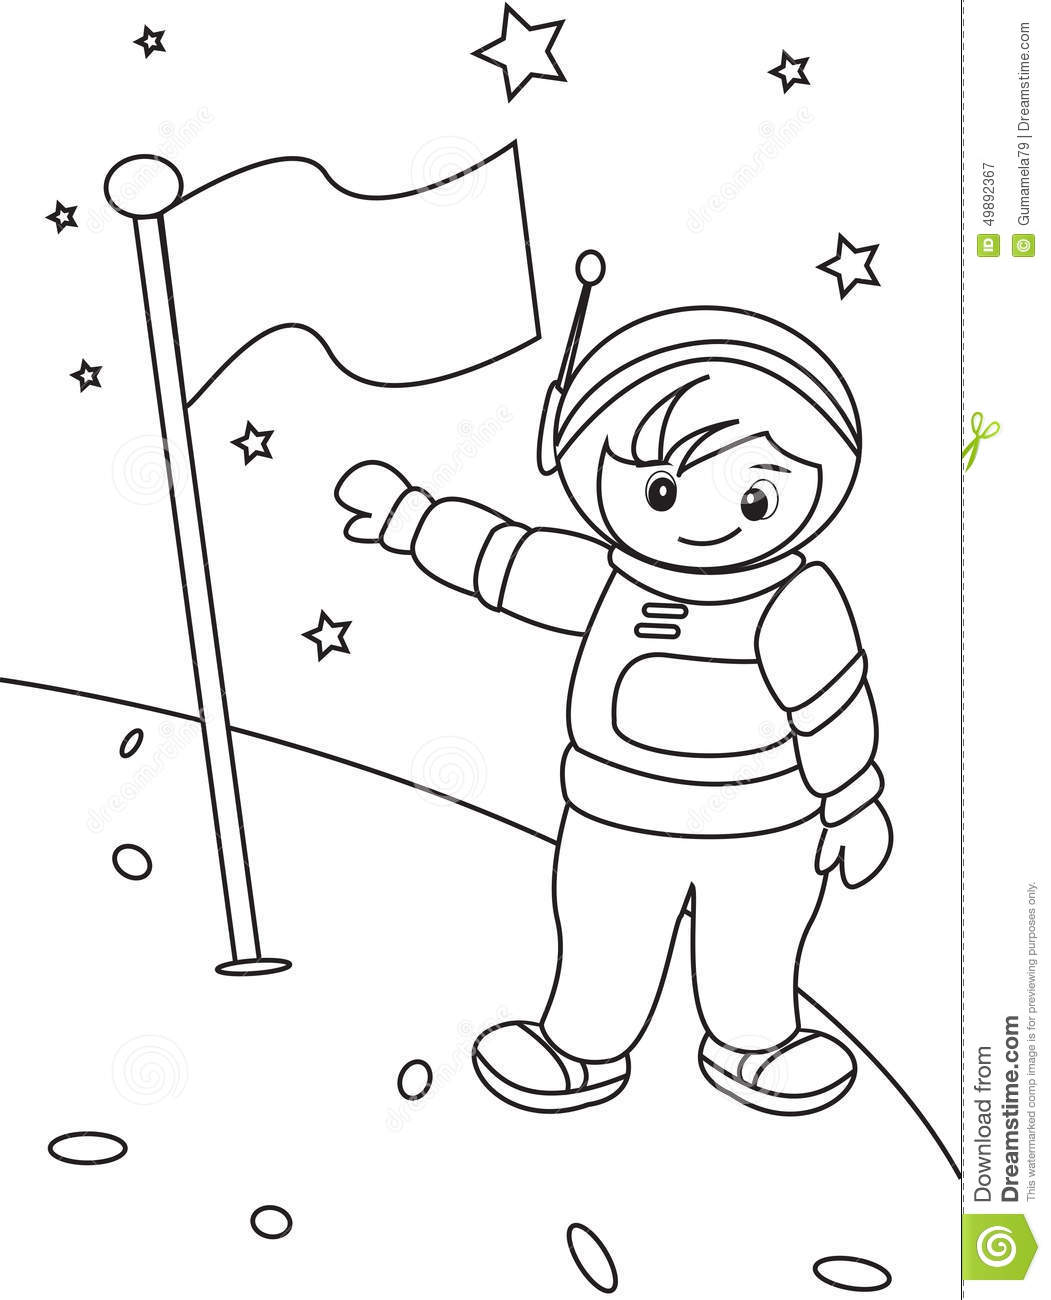 Astronaut coloring page stock illustration. Illustration of ...